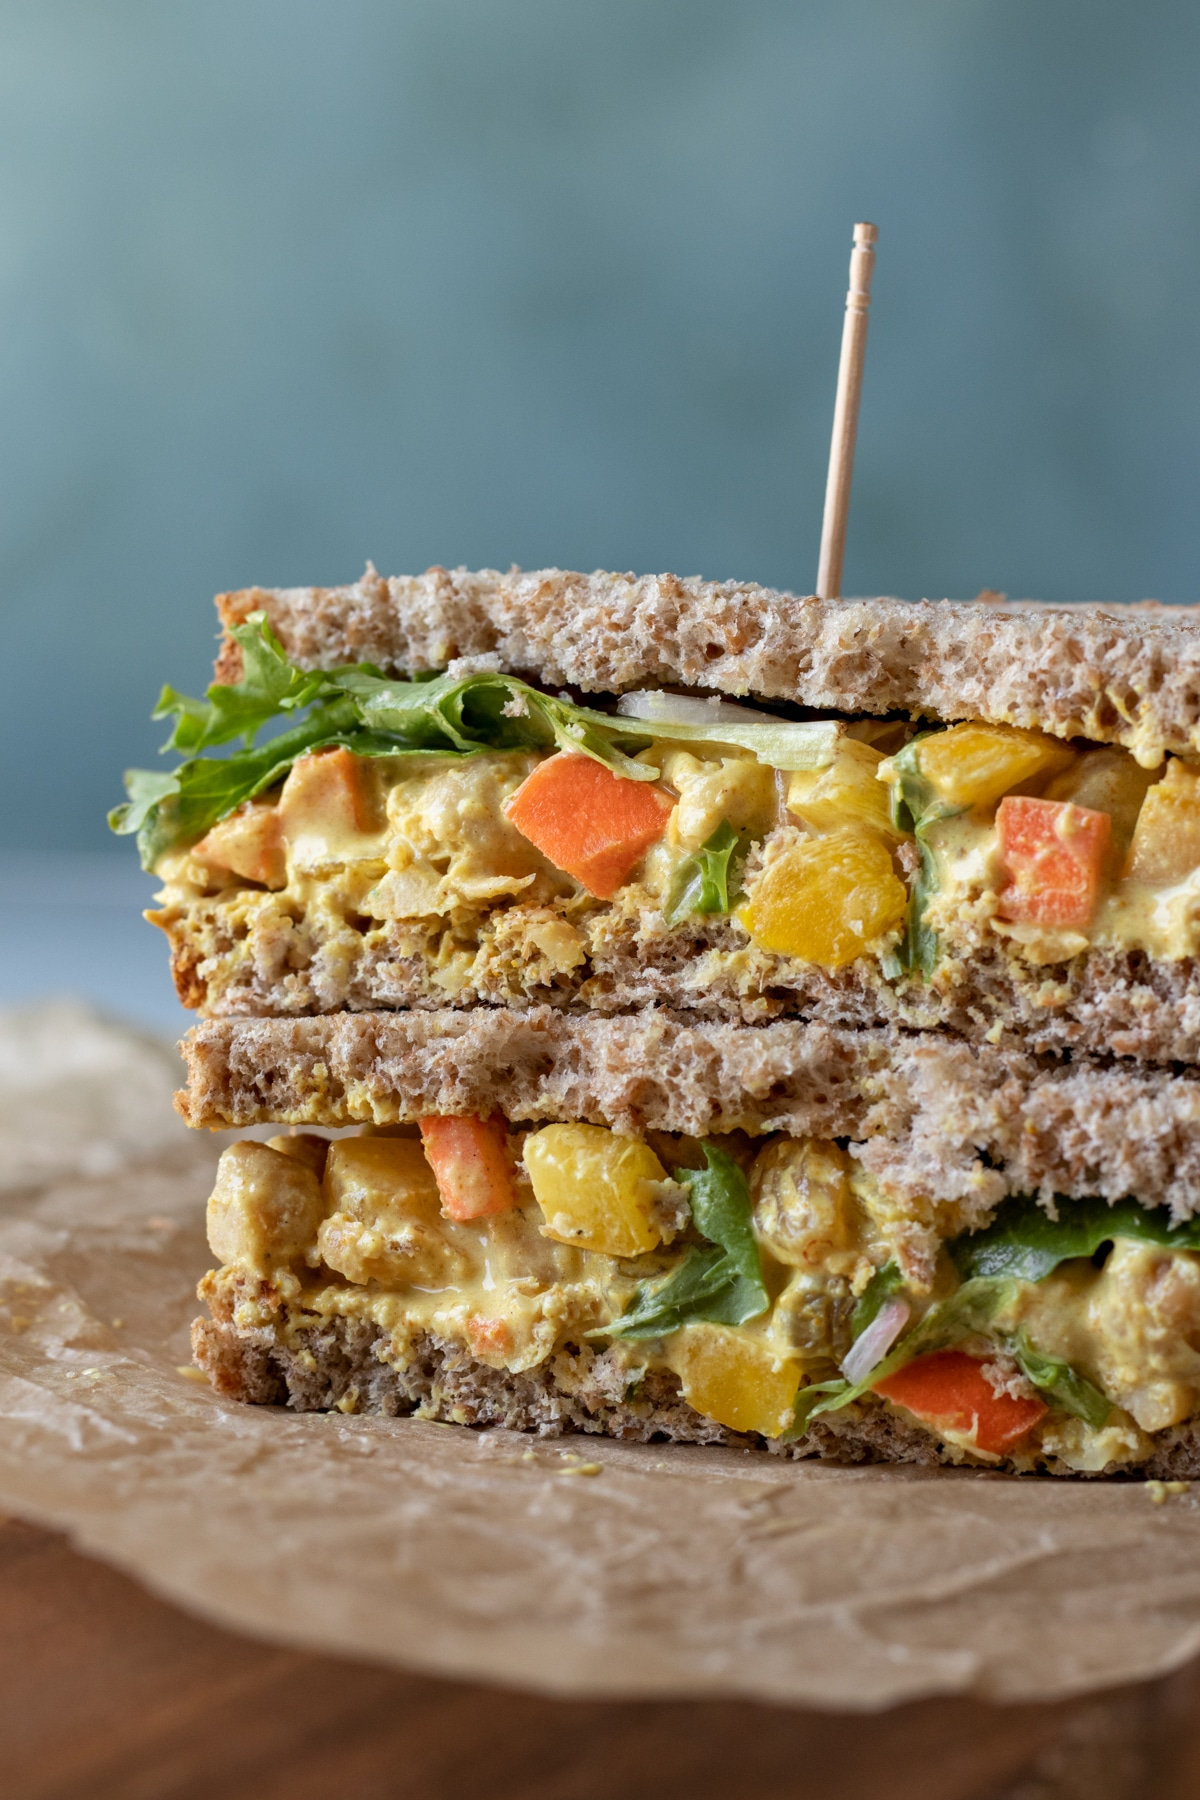 a chickpea salad sandwich cut in half and stacked showing all the veggies inside